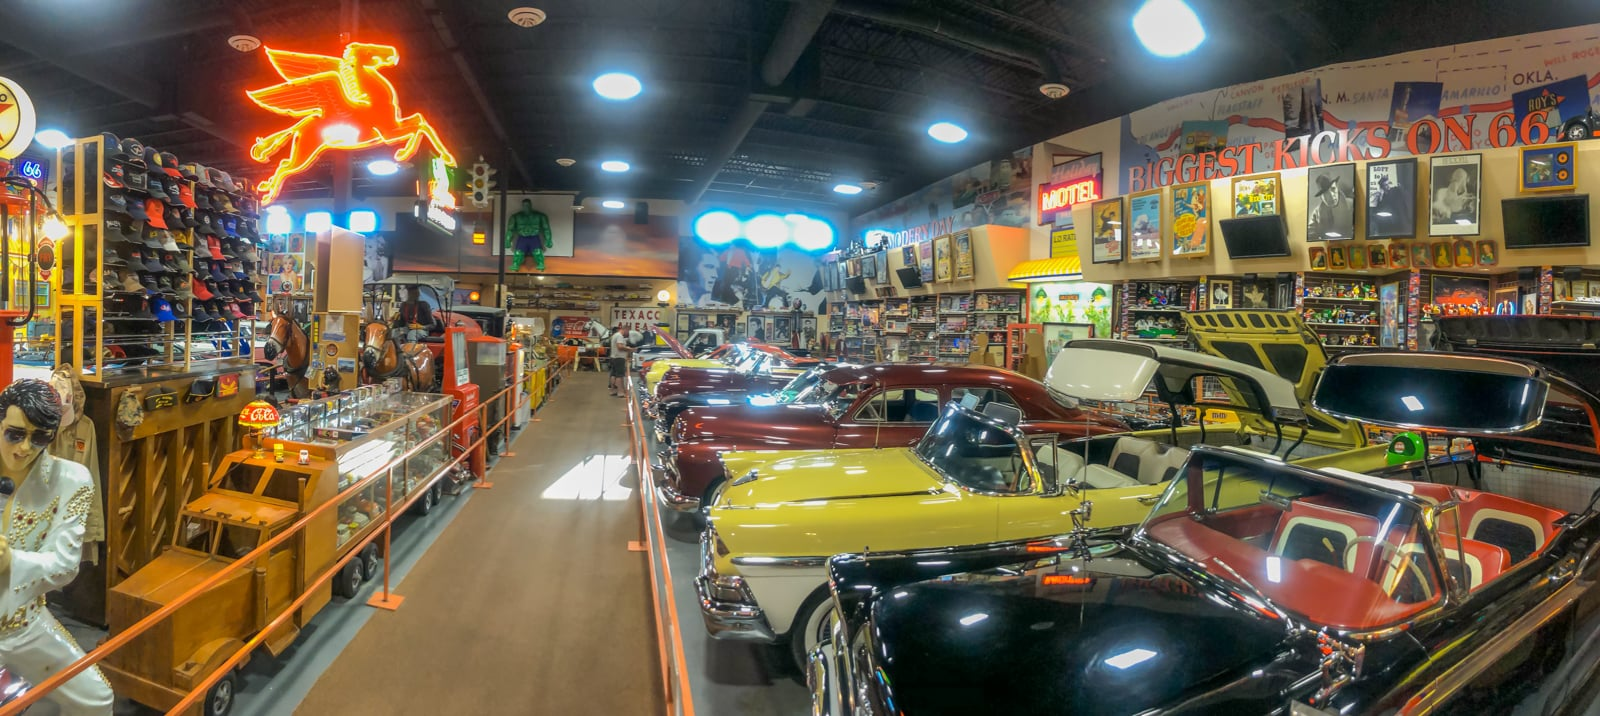 Russell's Truck & Travel Center auto museum